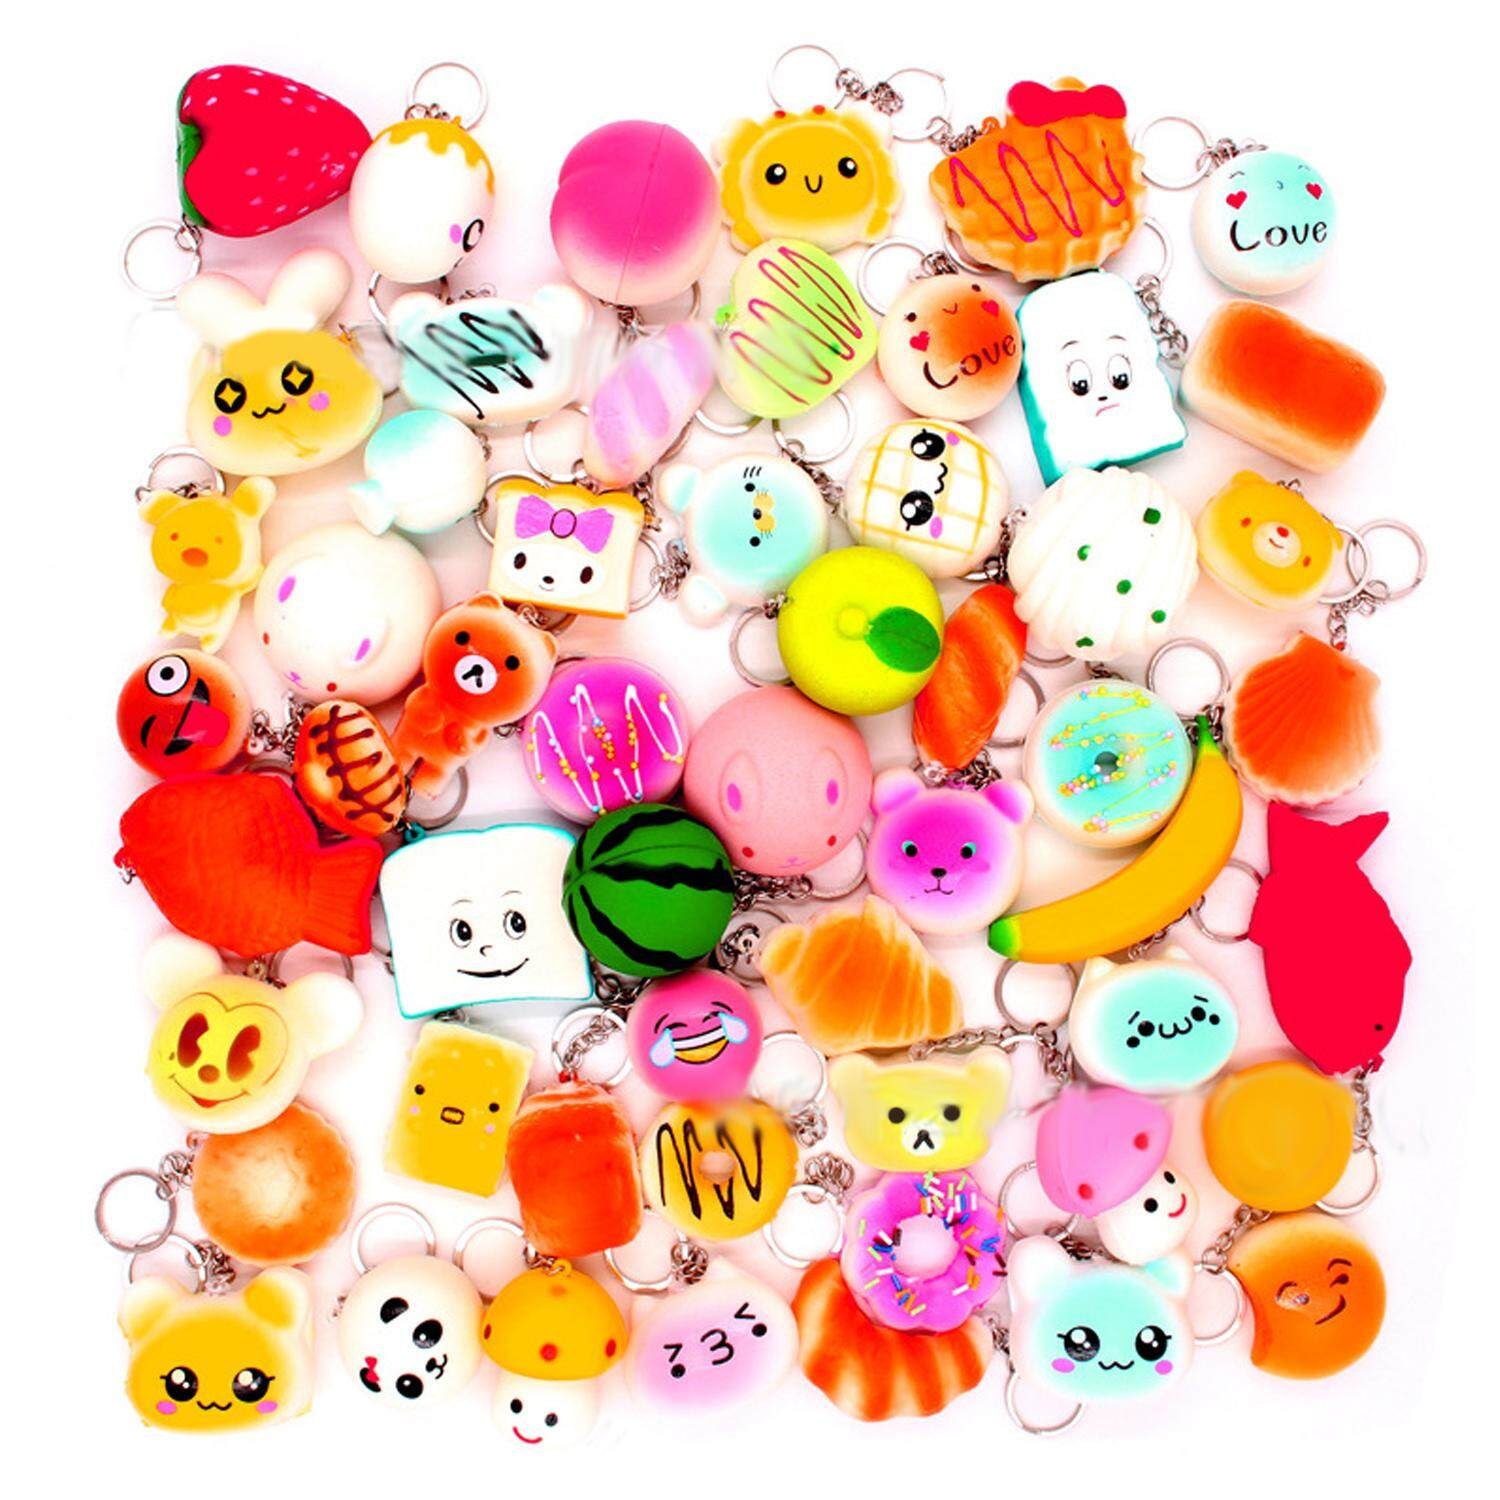 10 Pcs Funny Pu Hanging Slow Rising Squishy Toy Charms Key Chain Pendant For Relieves Stress Bag Purse Wallet Decoration Random Style - Intl By Stoneky.